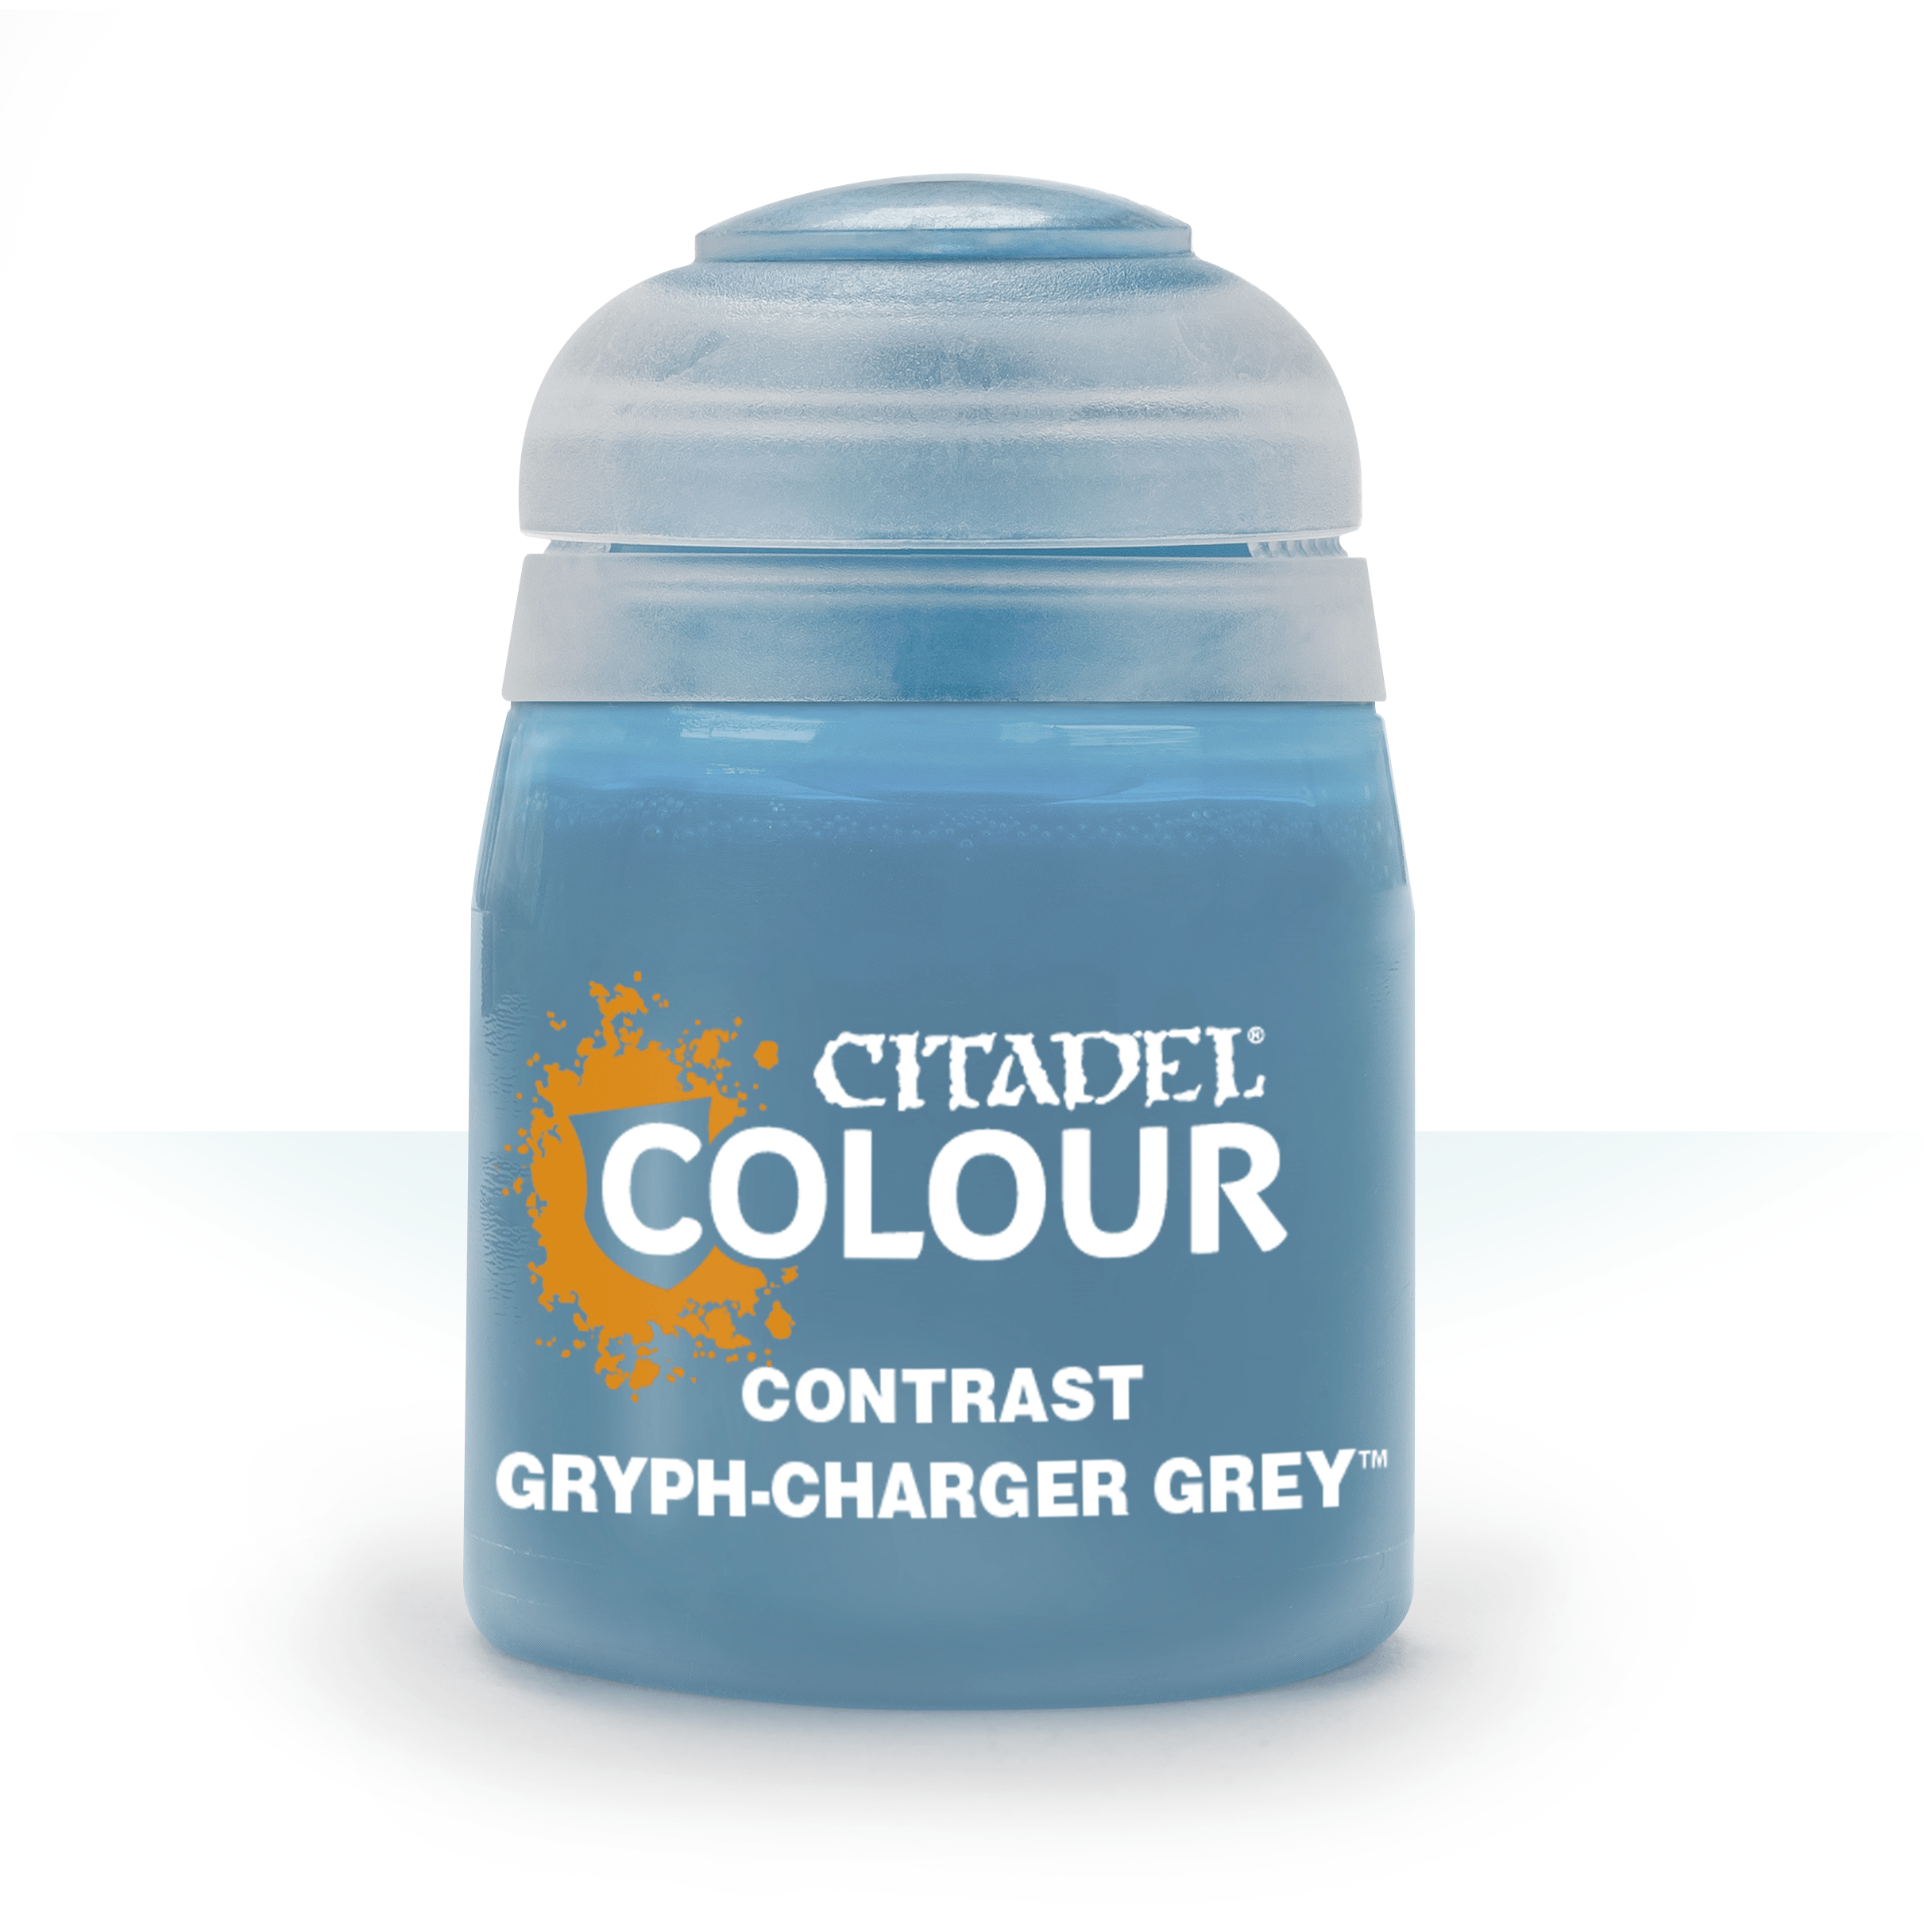 Citadel Contrast - Gryph-Charger Grey